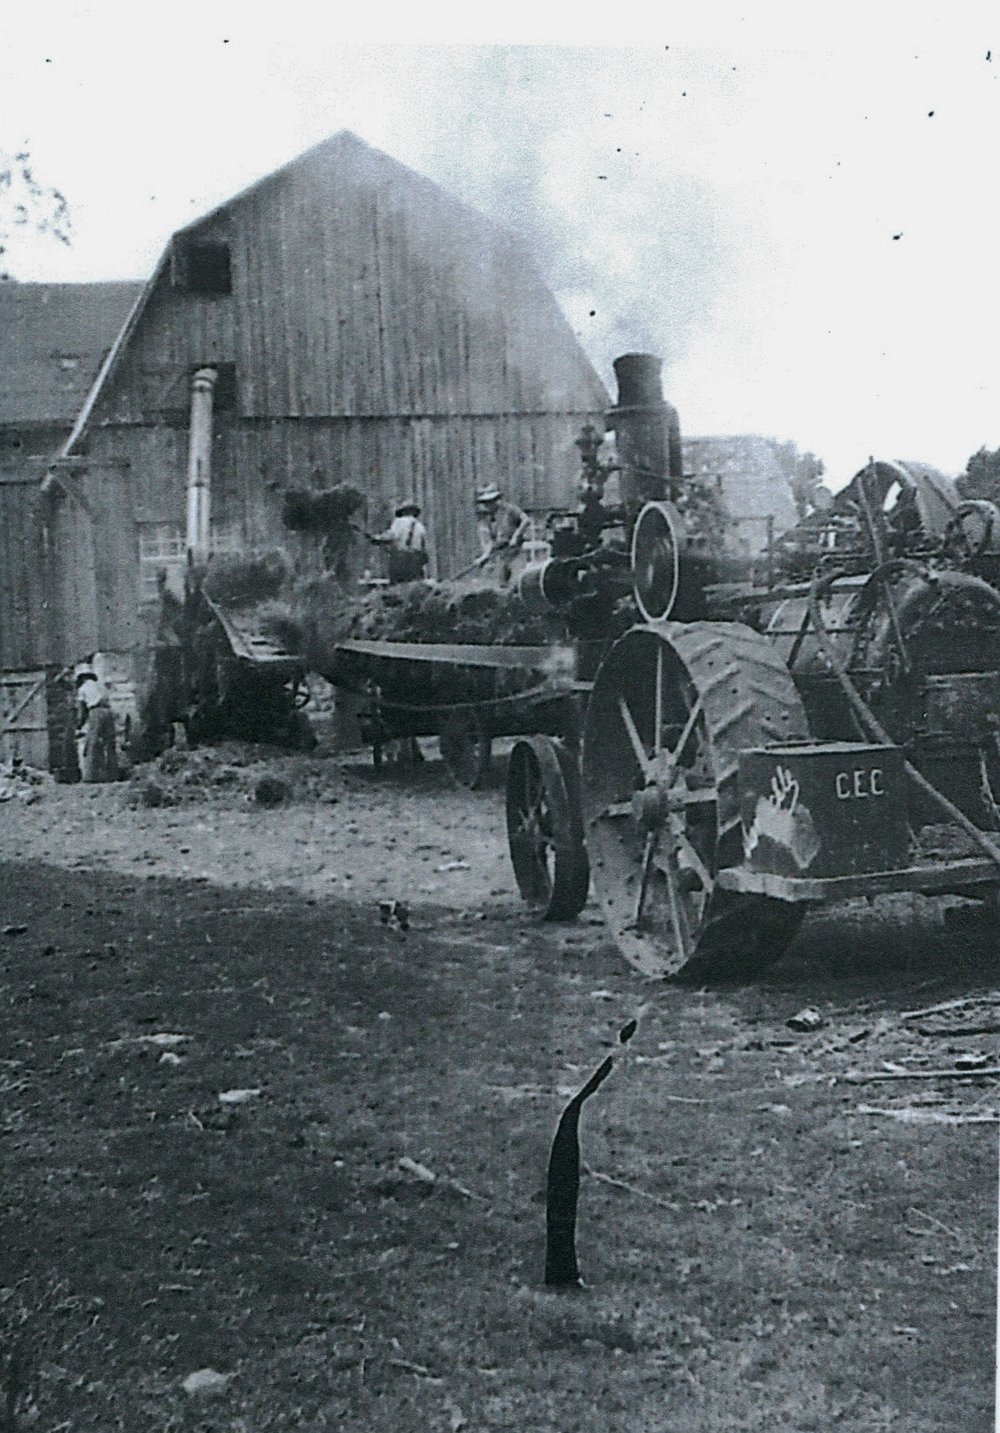 Harry Vansickle Threshing Machine & Steam Engine, East side of Vansickle